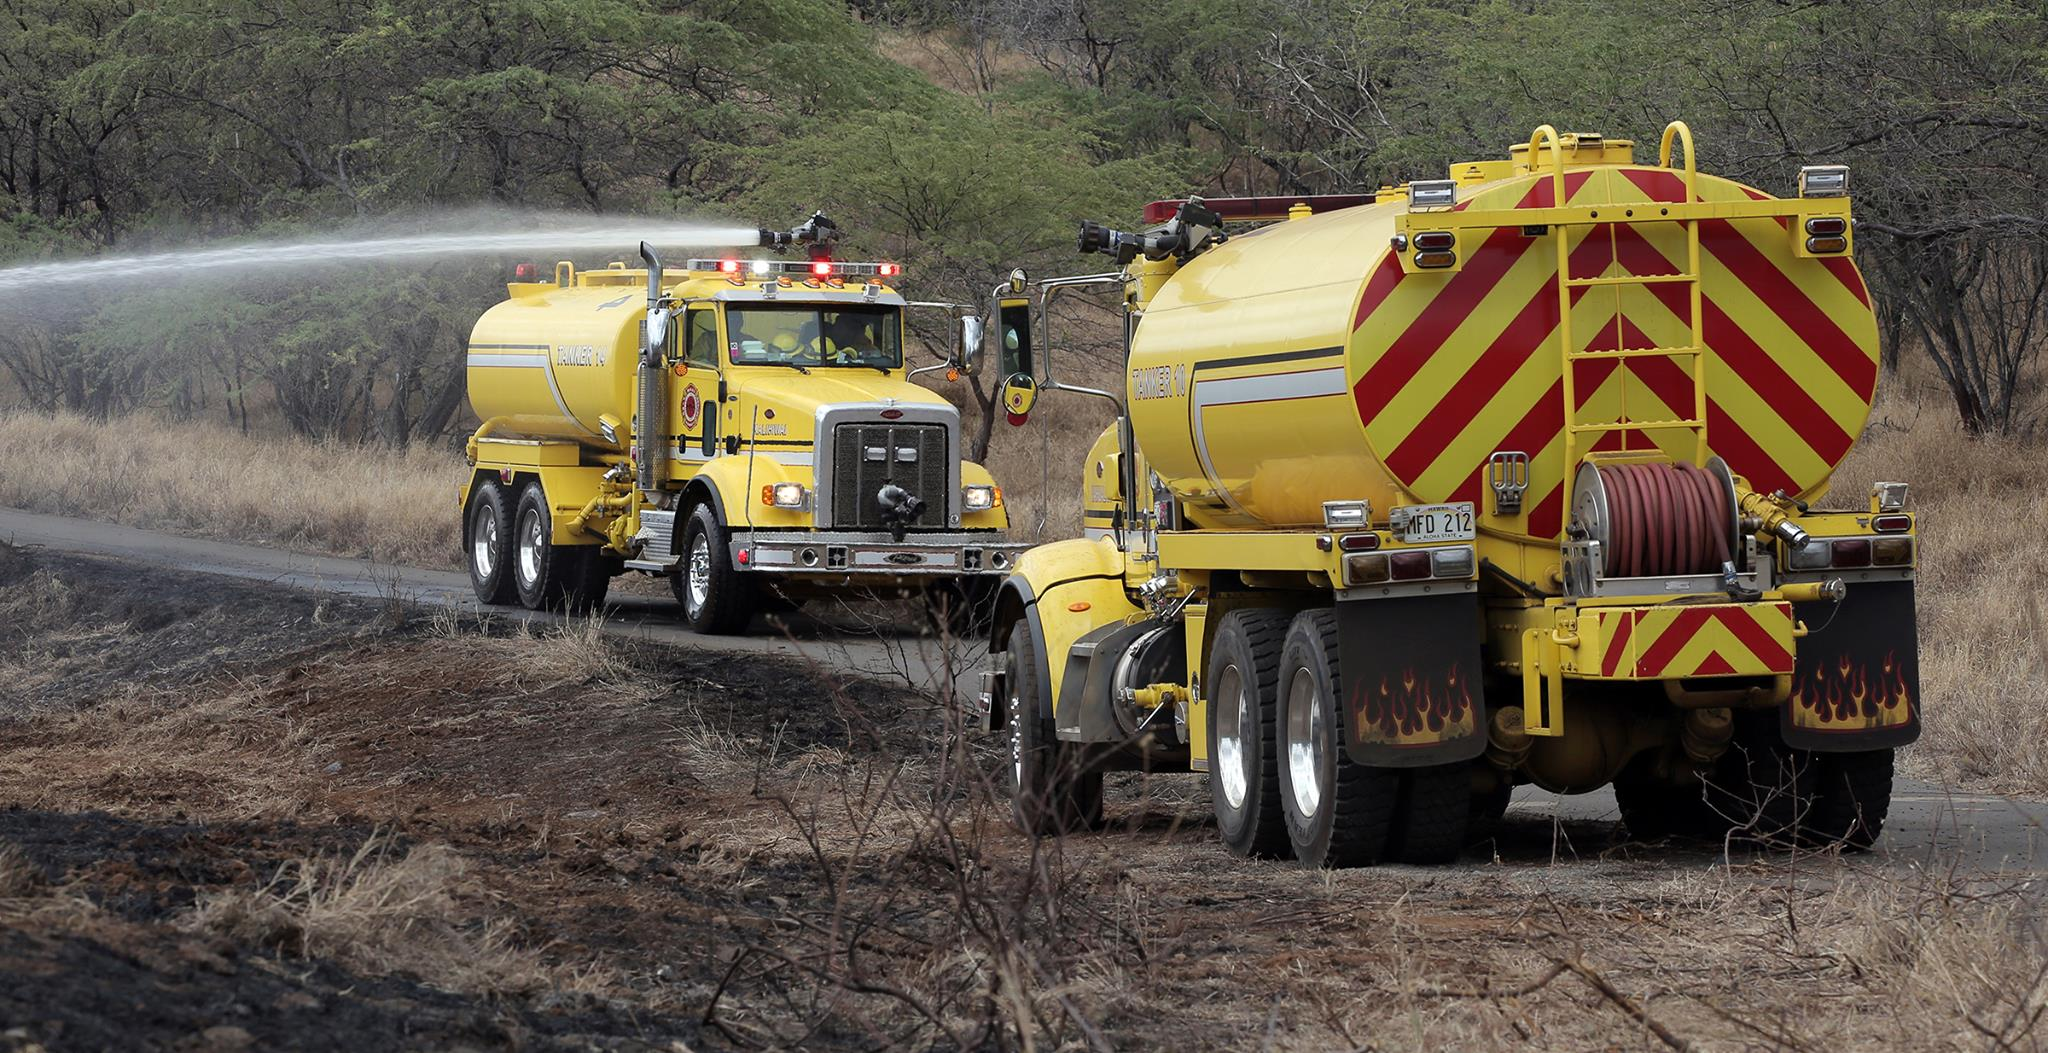 Wailea Fire 100% Contained